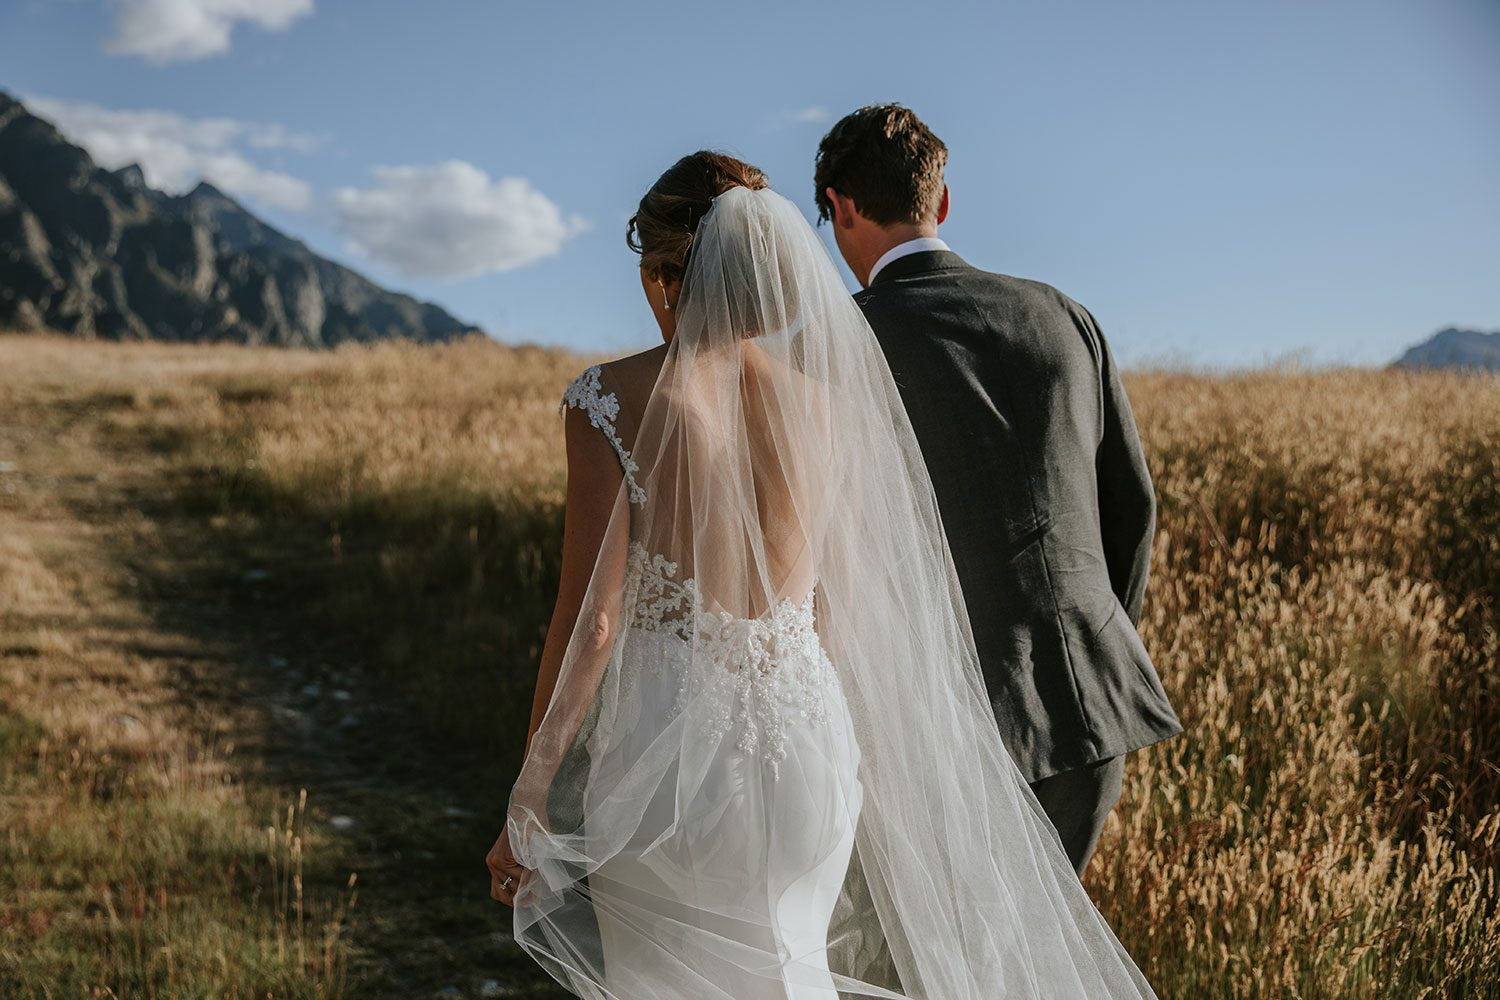 Bride wearing bespoke bridal gown with richly beaded lace over sheer tulle bodice and low back from Auckland wedding dress designer Vinka designs - walking away in field